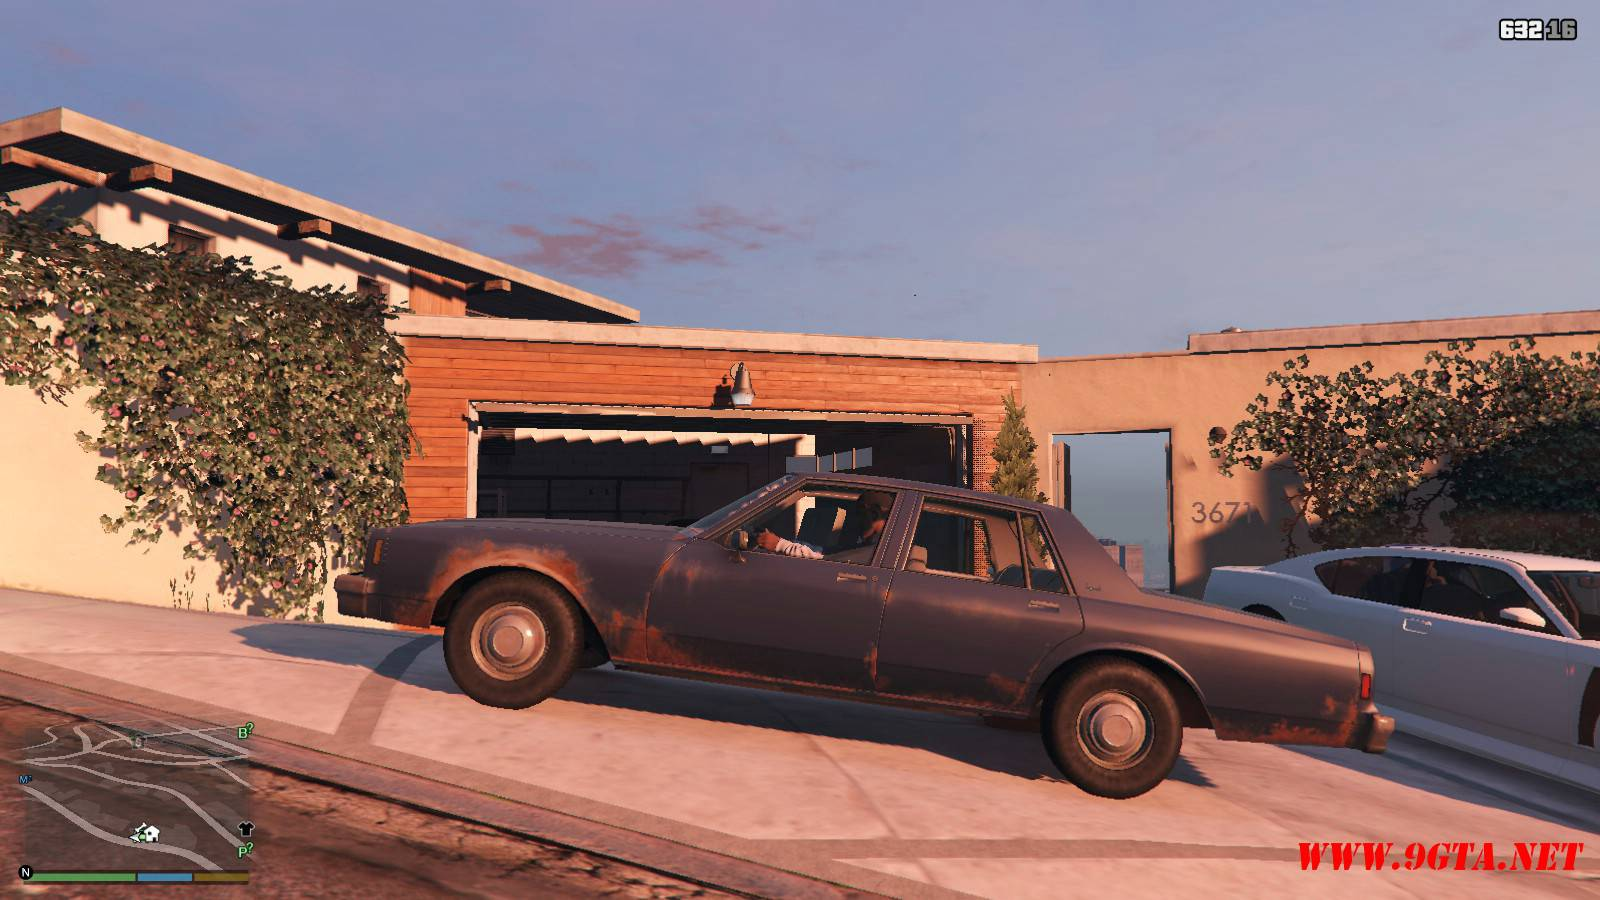 1985 Chevrolet Impala v1.1 Mod For GTA5 (2)